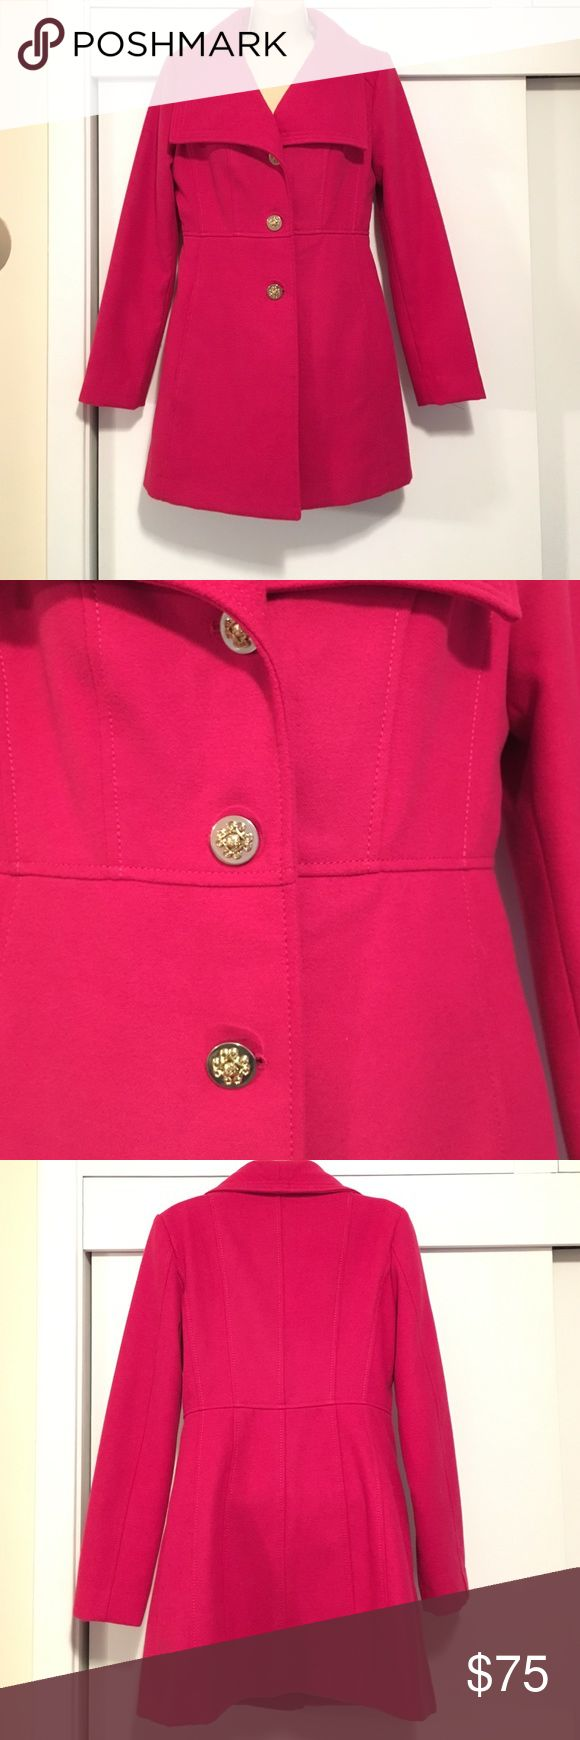 Jessica Simpson Pink Coat sz S Brand new, never worn! Beautiful Magenta pink Jessica Simpson coat with gold detailed buttons sz S. This coat is in brand-new condition. No trades please, from a pet and smoke free home. Jessica Simpson Jackets & Coats